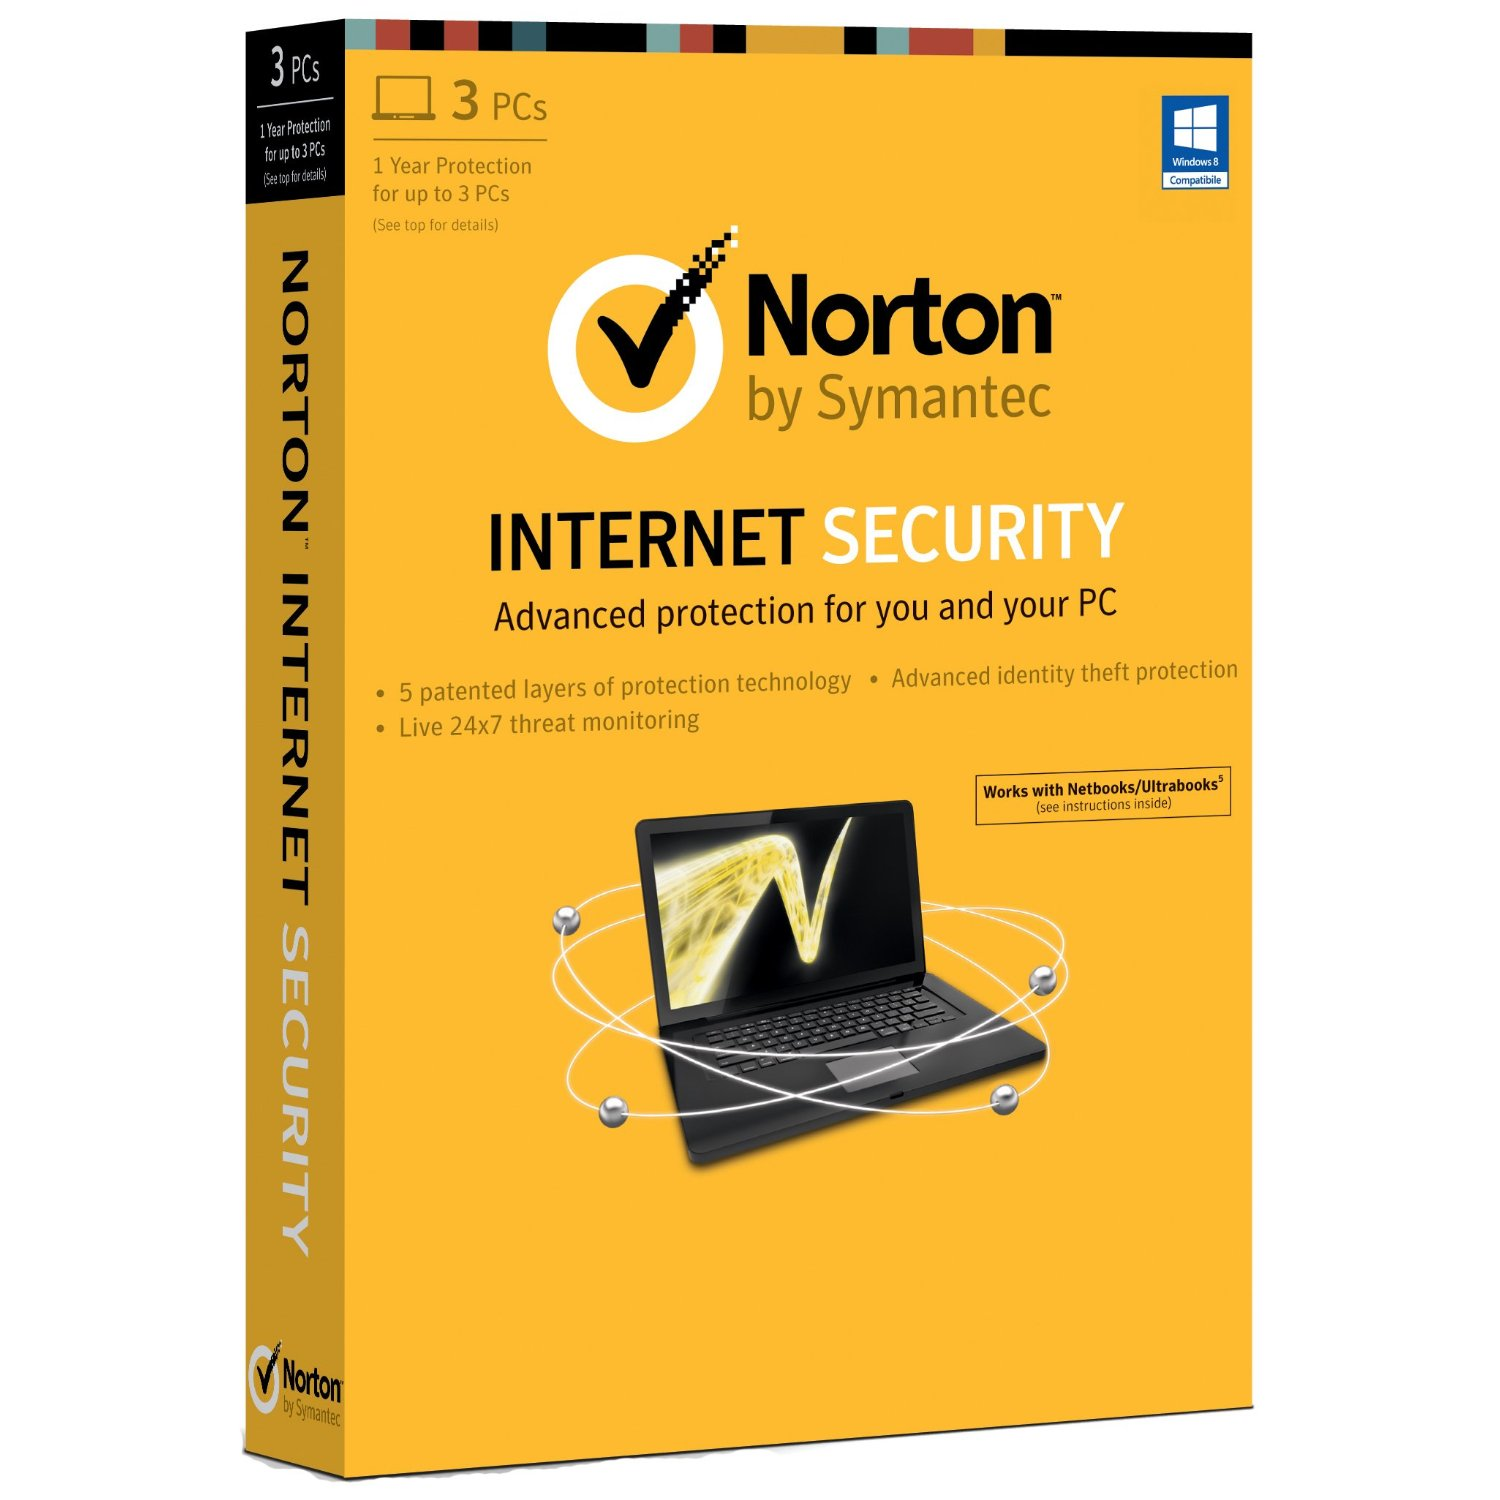 Norton Internet Security 2014 3 Computers 1 Year Subscription PC)